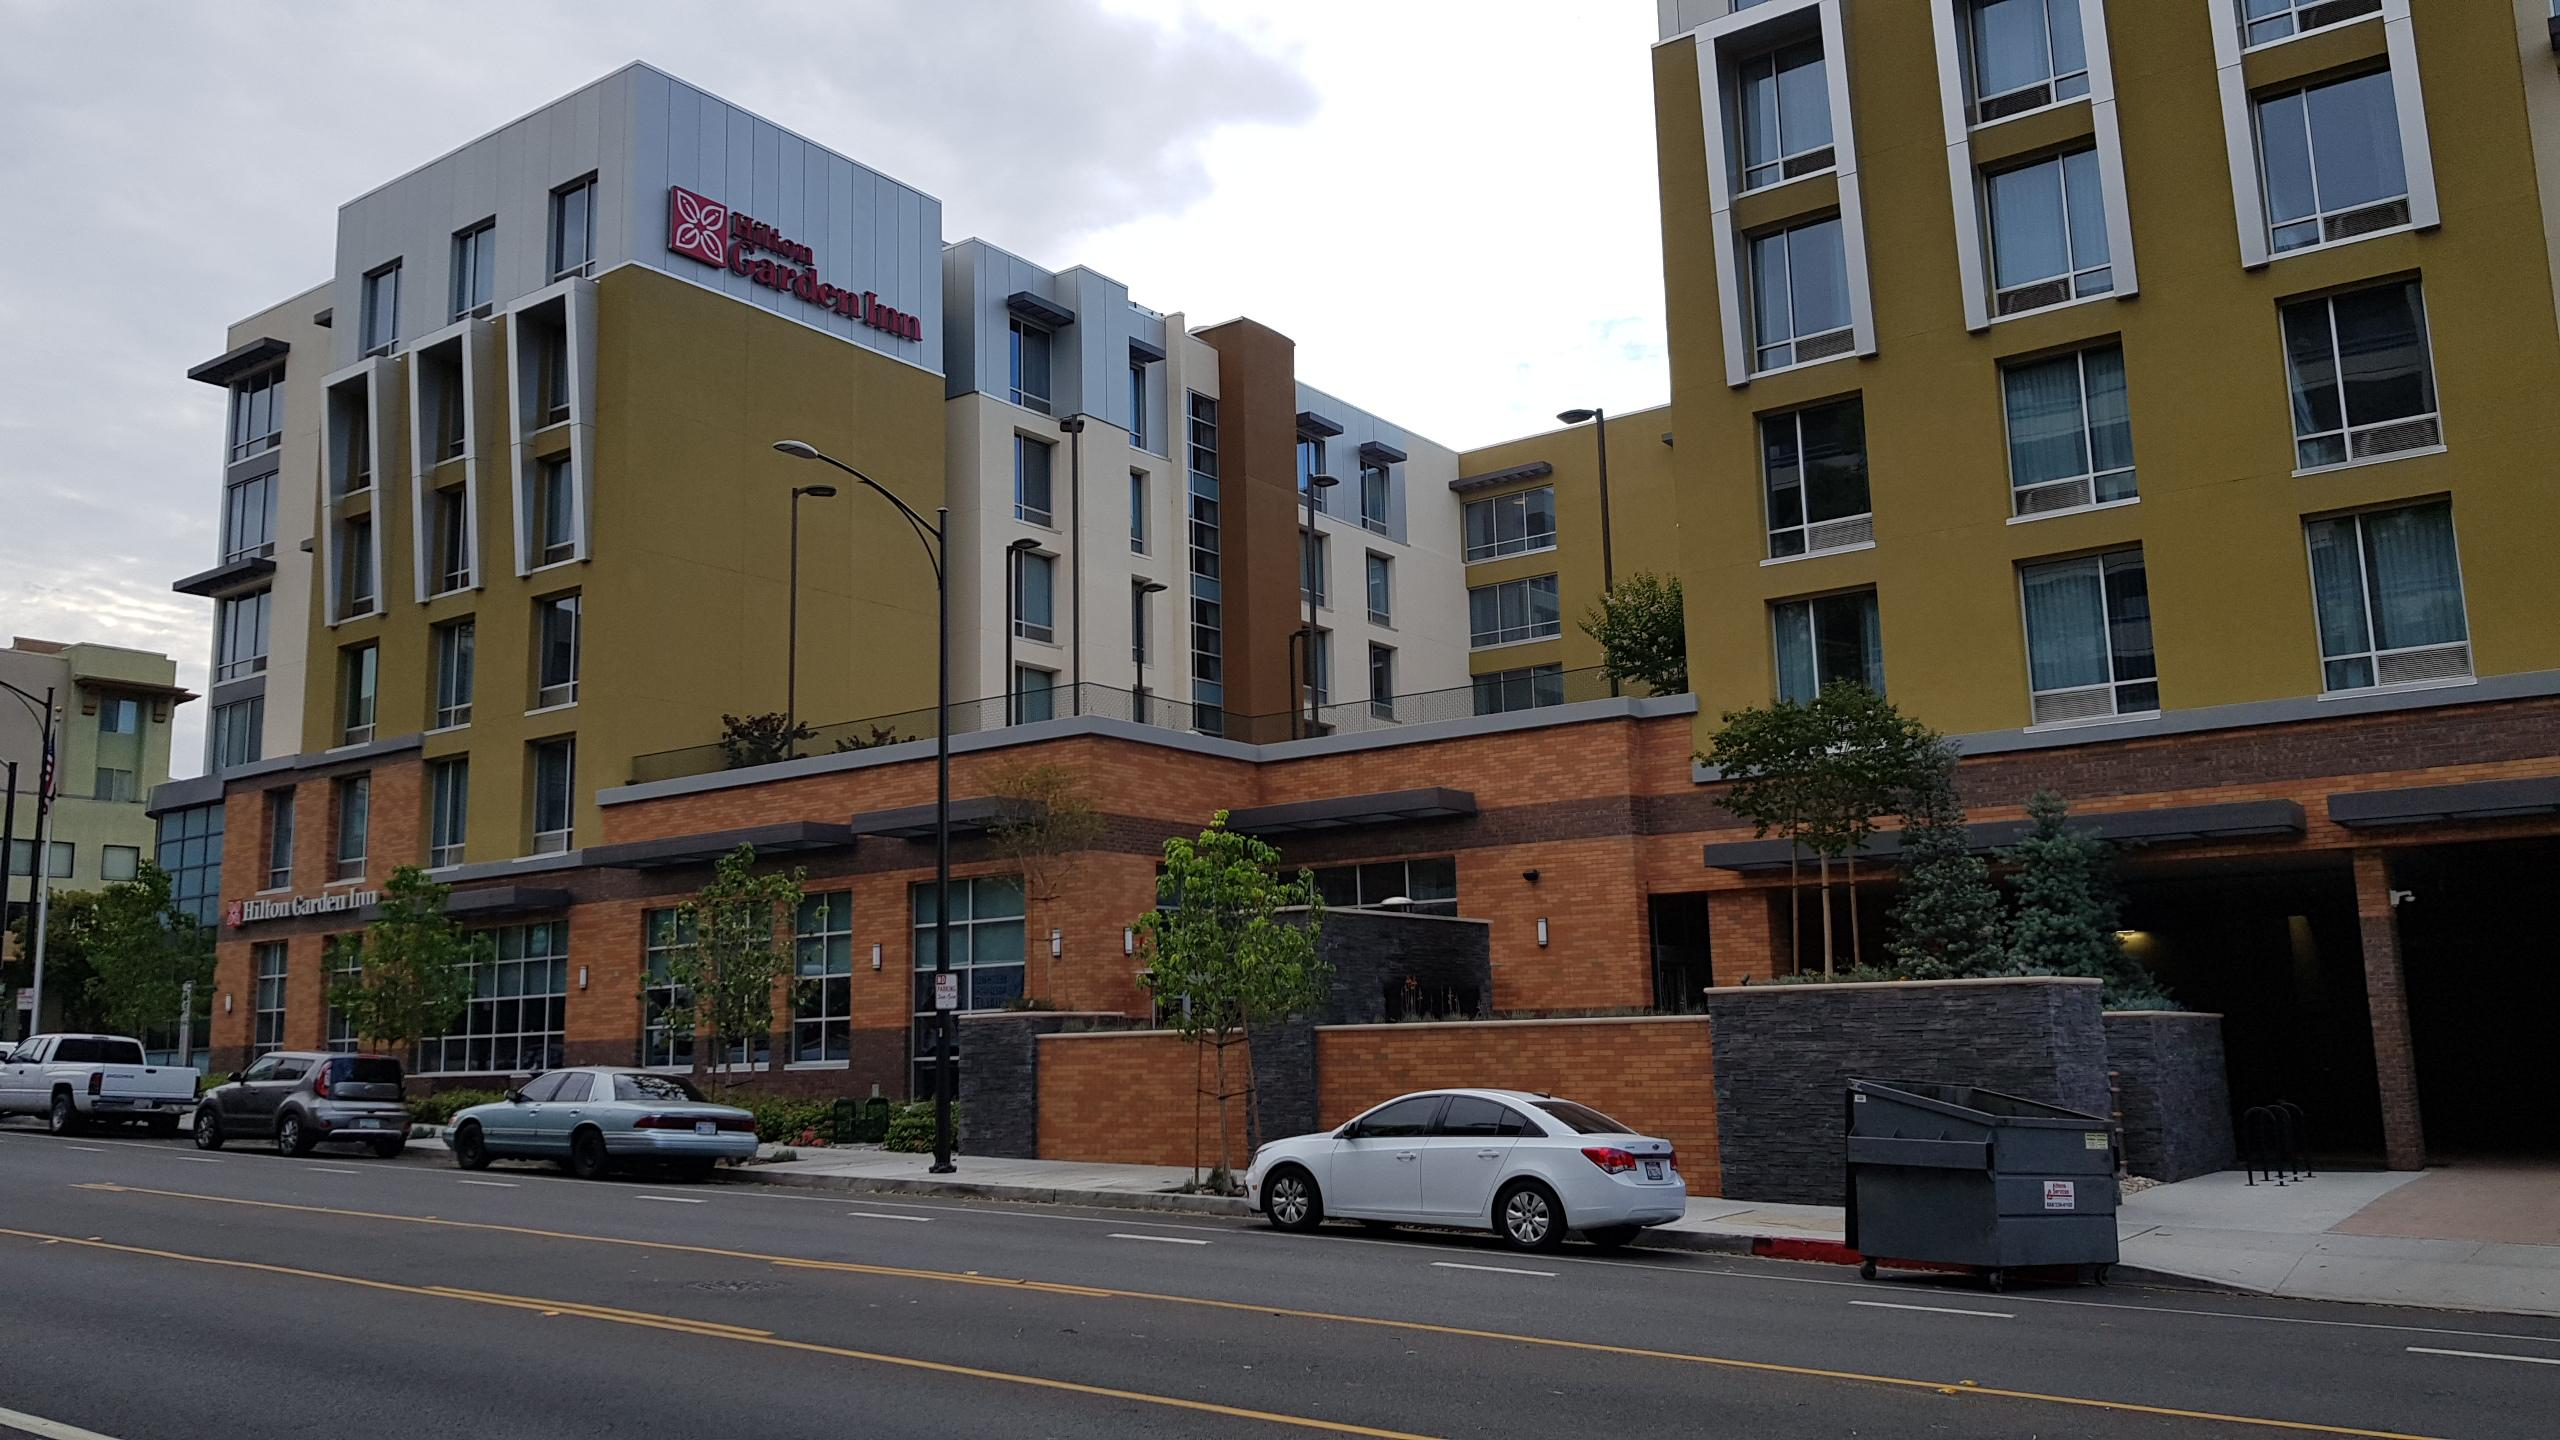 Hilton Garden Inn Burbank Downtown In Los Angeles Hotel Rates Reviews On Orbitz